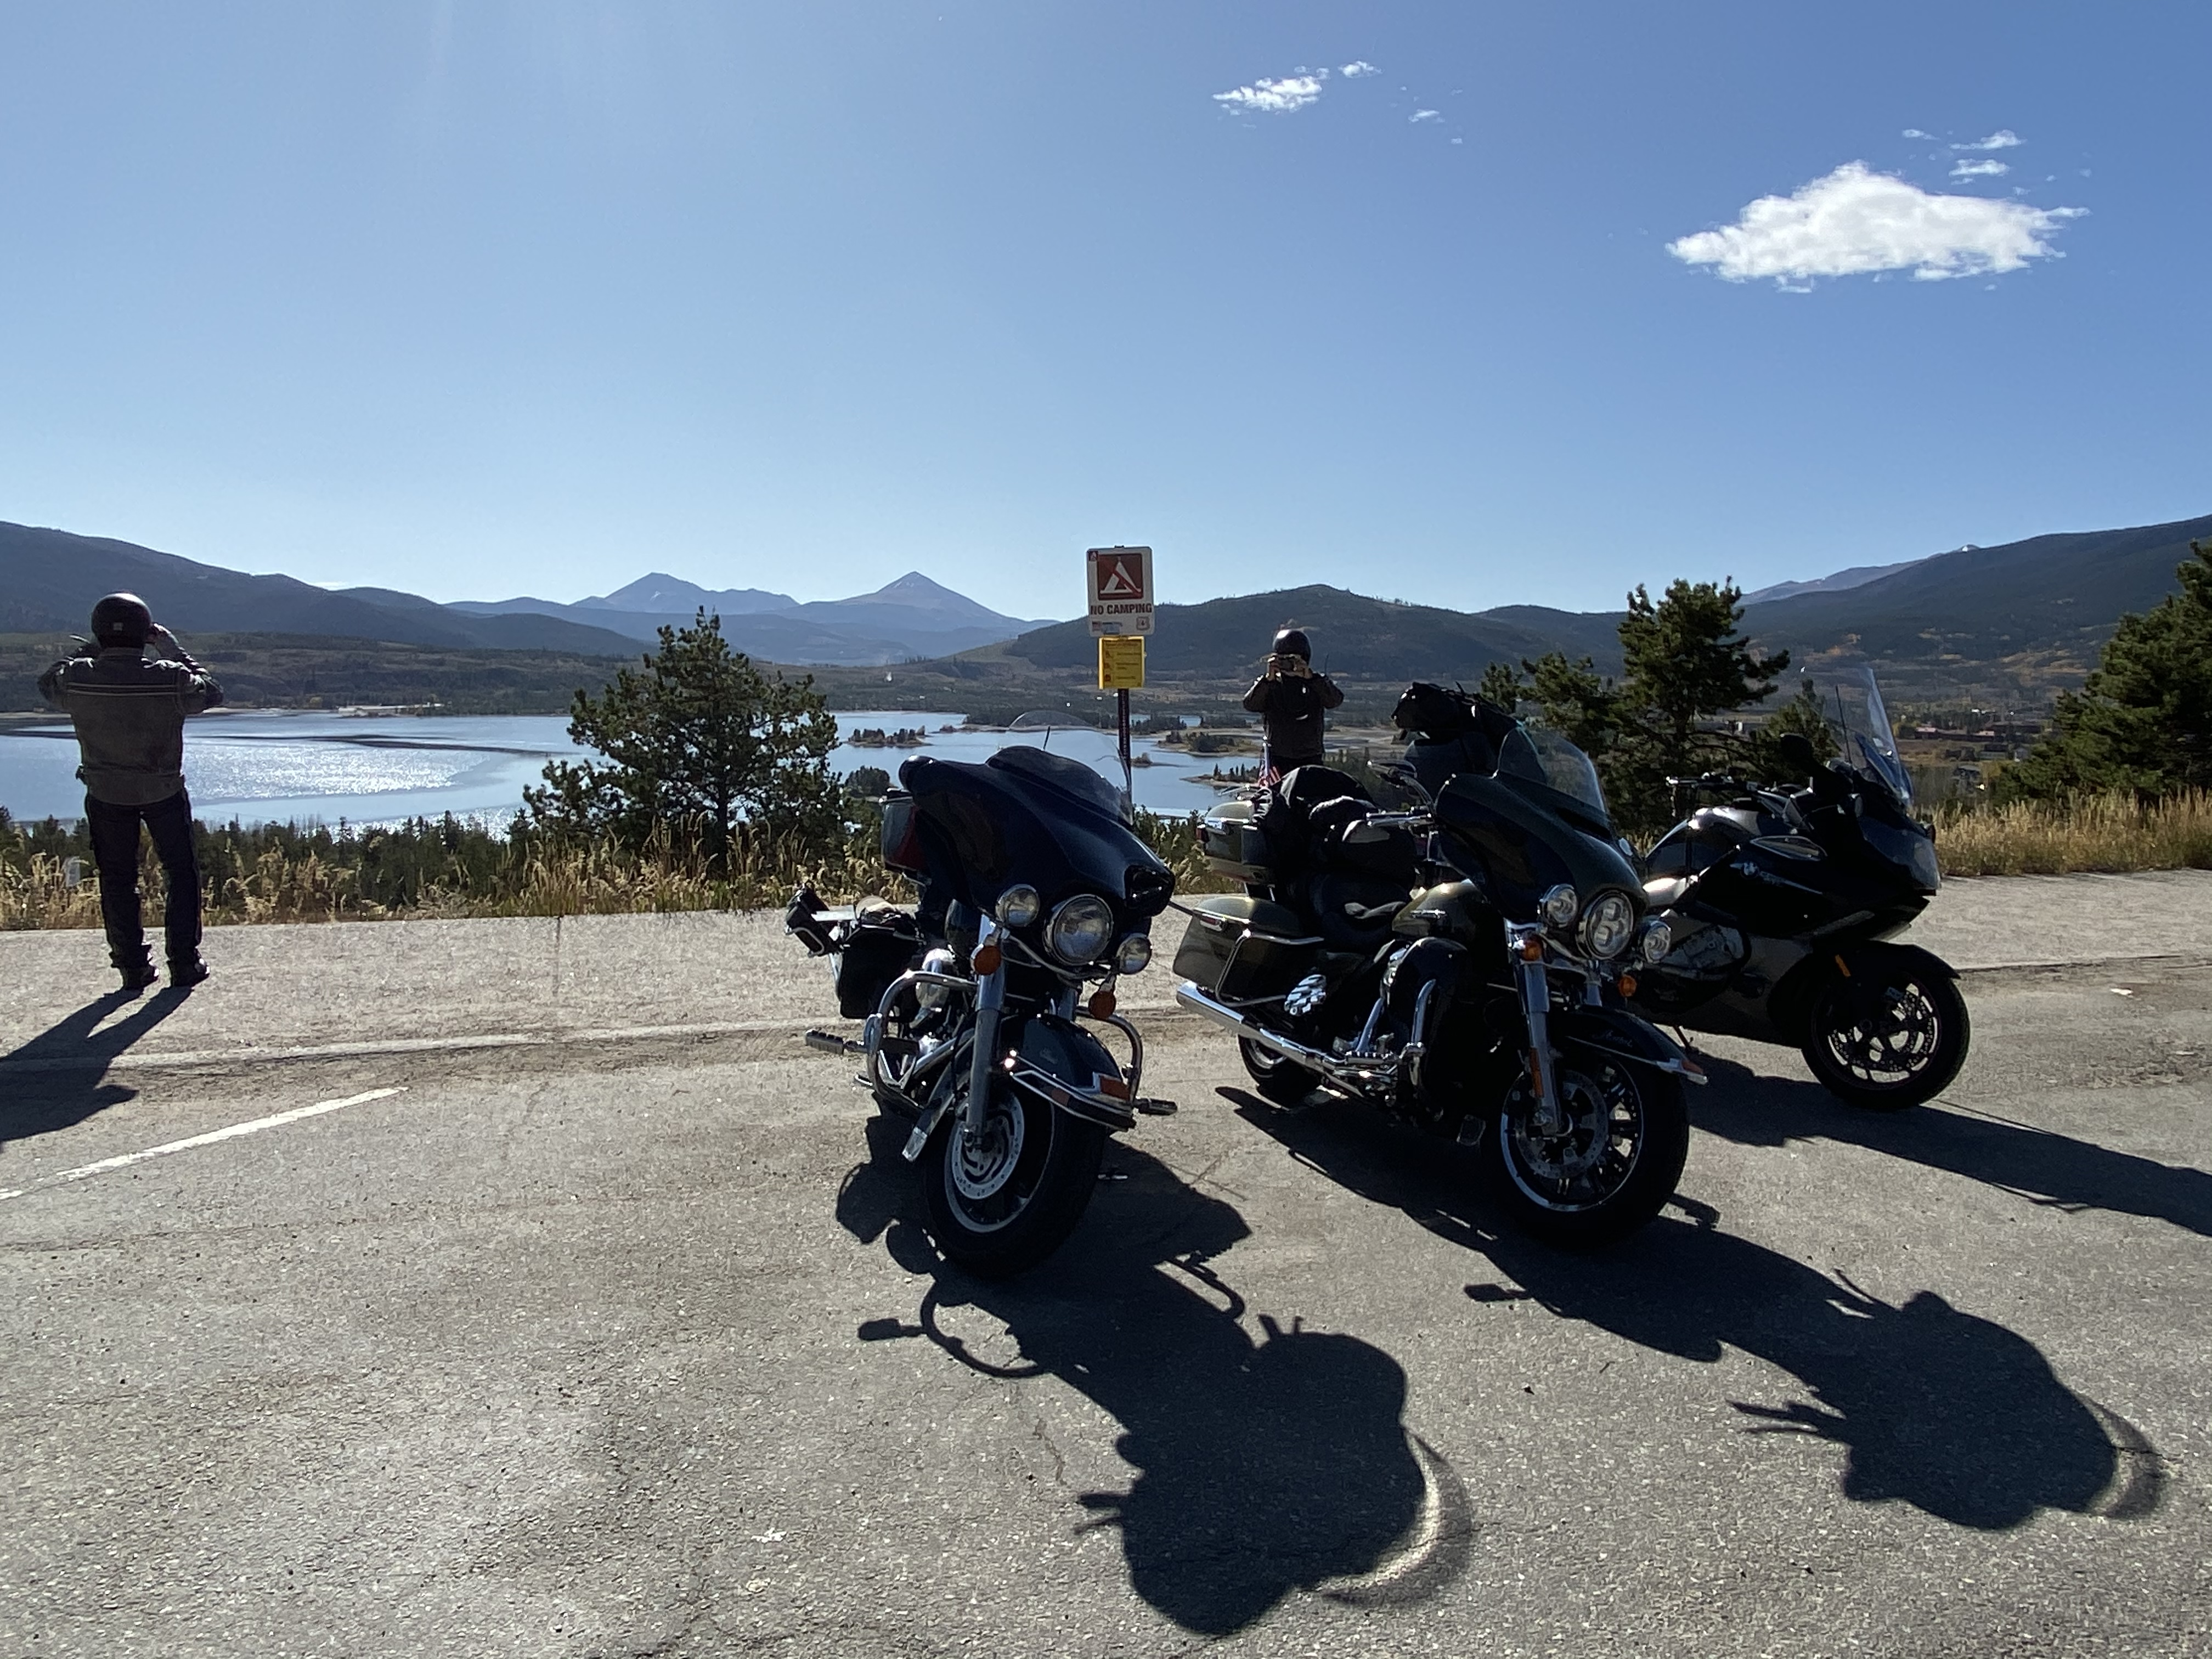 The group at the Dillon Reservoir overlook.